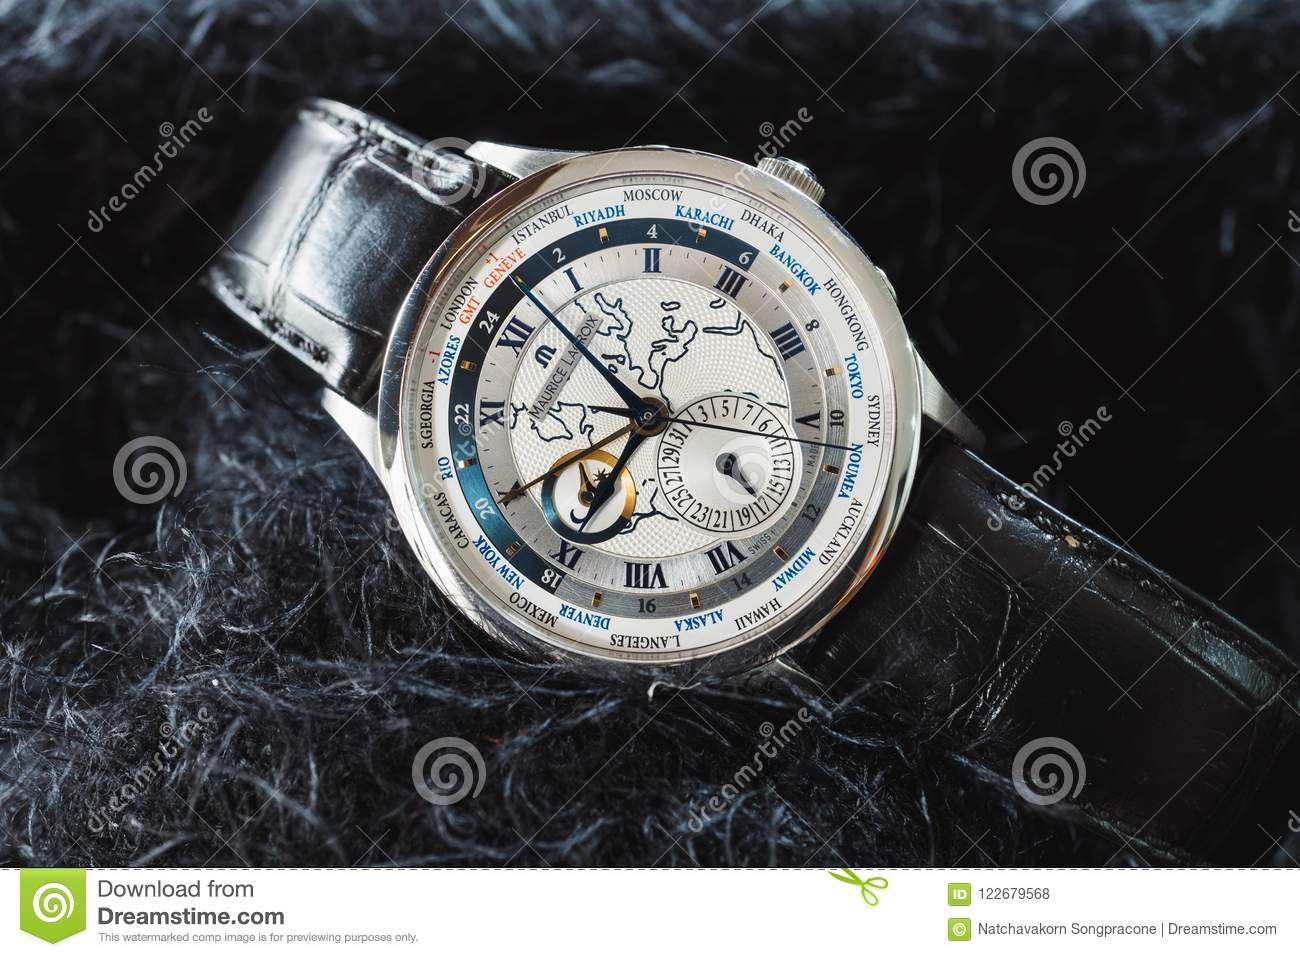 NAKHON RATCHASIMA, THAILAND - JULY 31, 2018 : Maurice Lacroix world timer collection with world map on dial watch